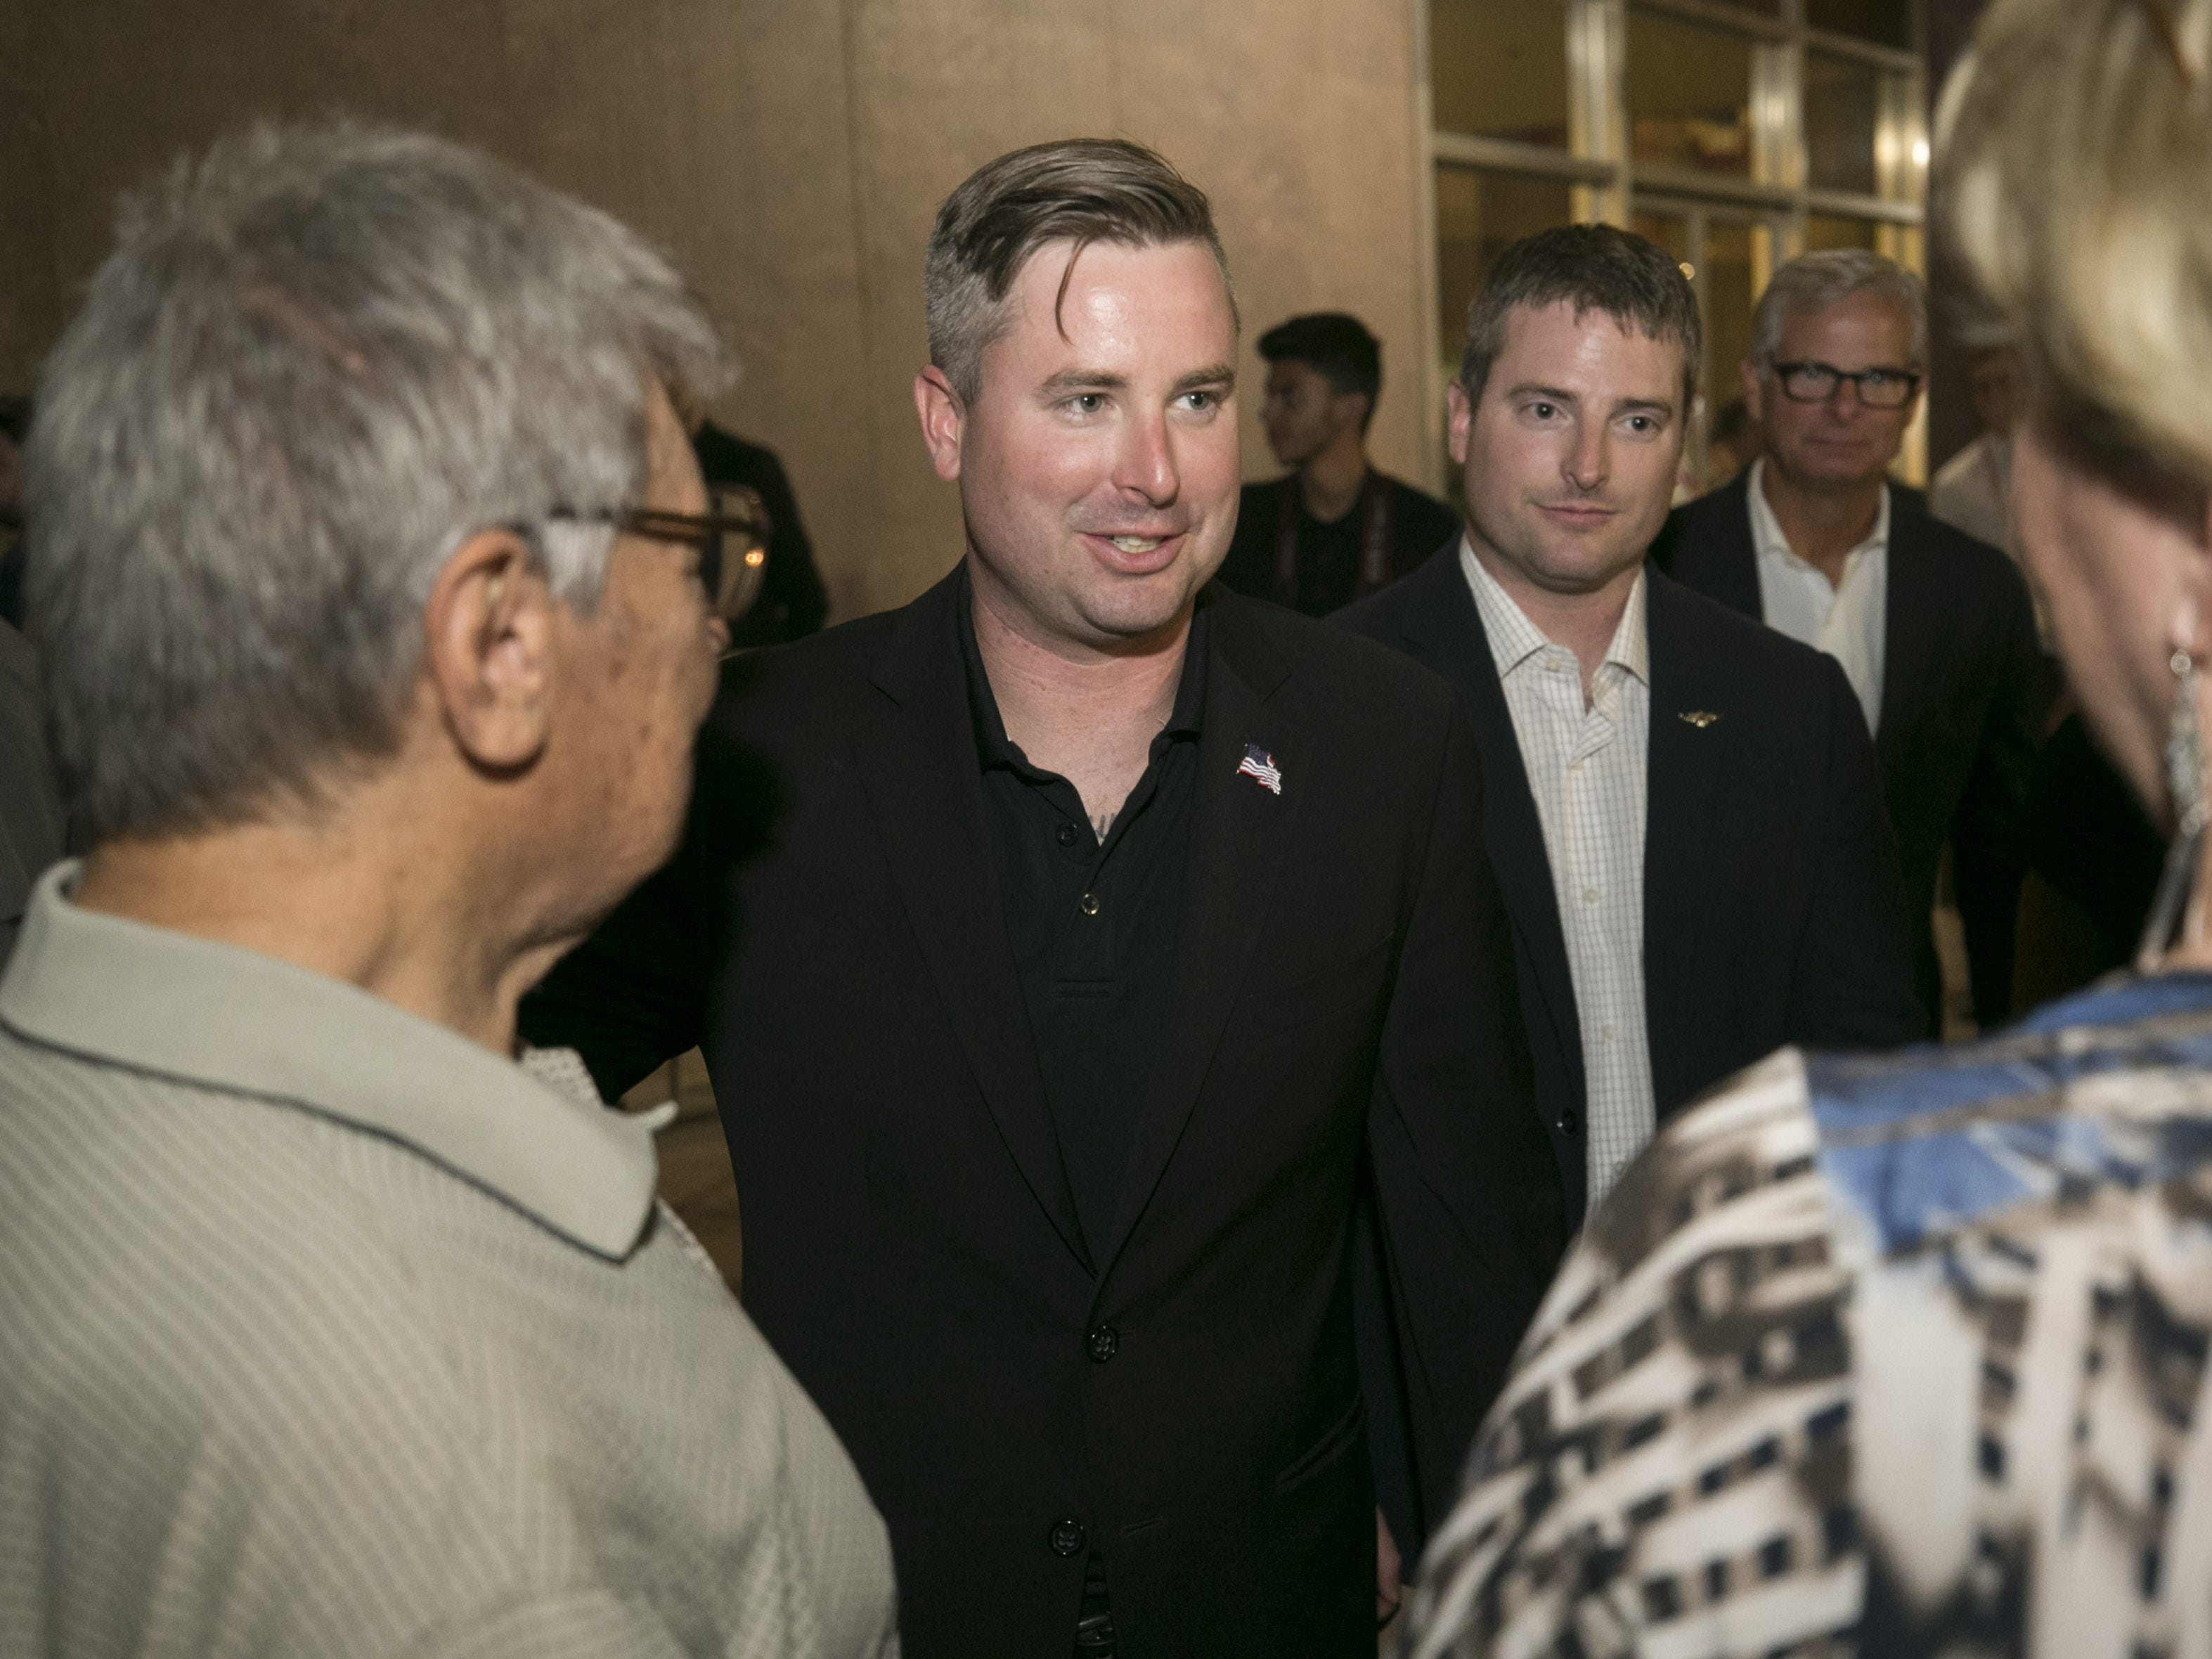 Jimmy McCain, (center left) and Jack McCain, (center right) the sons of Sen. John McCain, greet people who came pay their respects to their father as they wait in line to enter the Arizona state capitol where Senator John McCain lies in state in Phoenix on Wednesday, August 29, 2018.